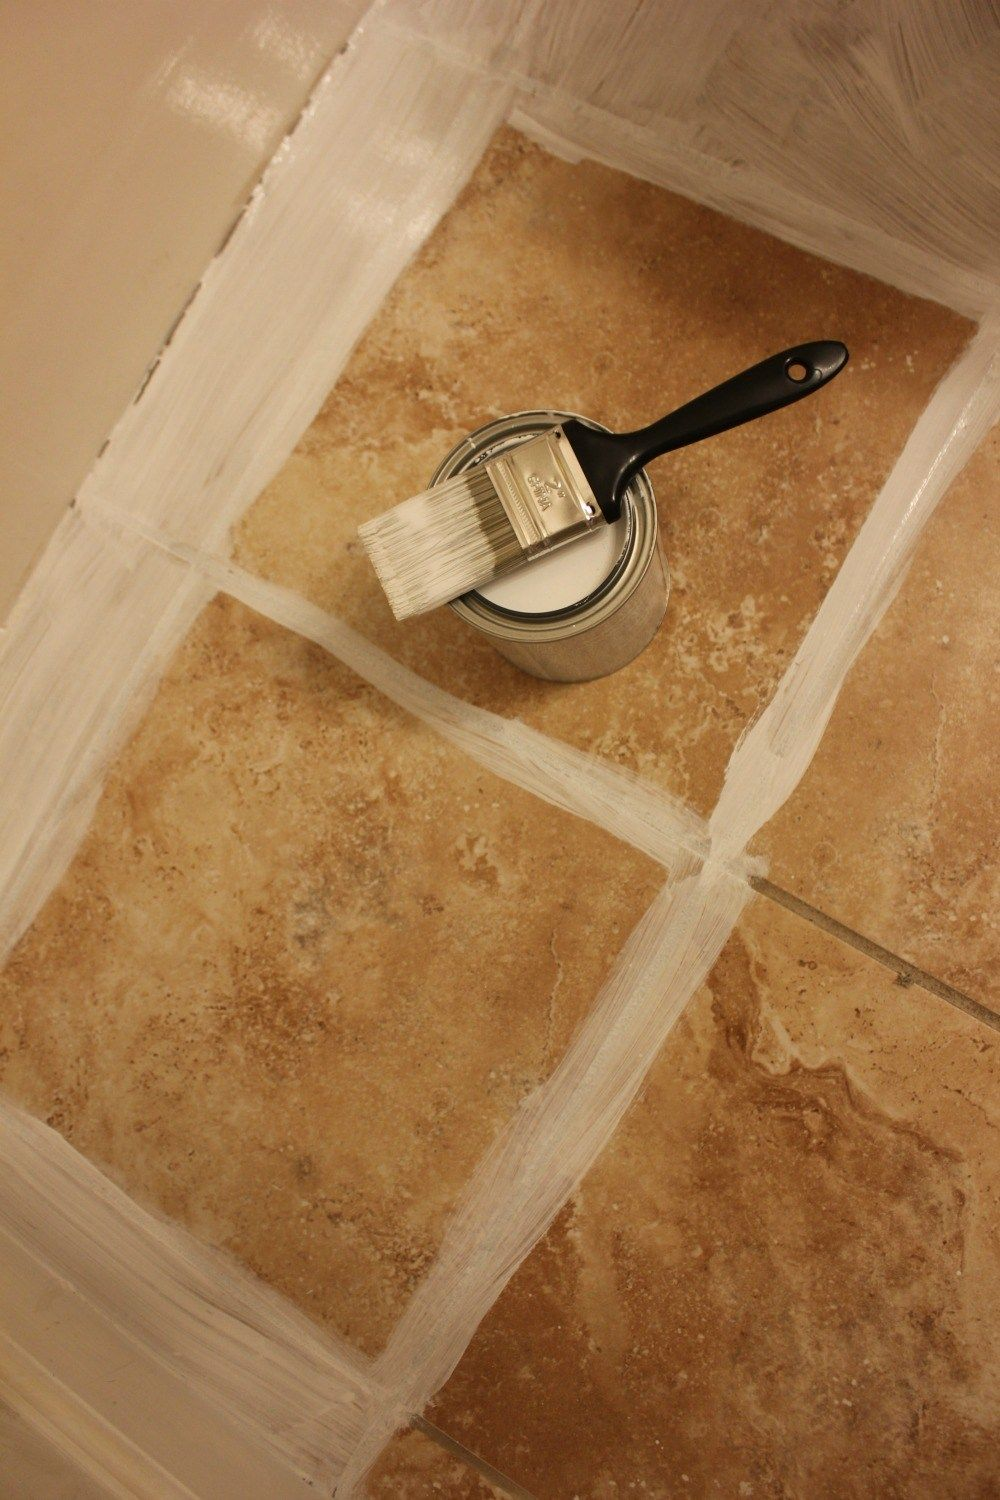 How To Paint A Tile Floor Without Losing Your Mind is part of Painting tile floors, Tile bathroom, Painted kitchen floors, Tile floor diy, Painting ceramic tile floor, Painting tile - An honest tutorial of the full process of painting floor tiles with a stencil  From mistakes, mishaps, tips, and tricks, you'll learn how to paint tile the right way